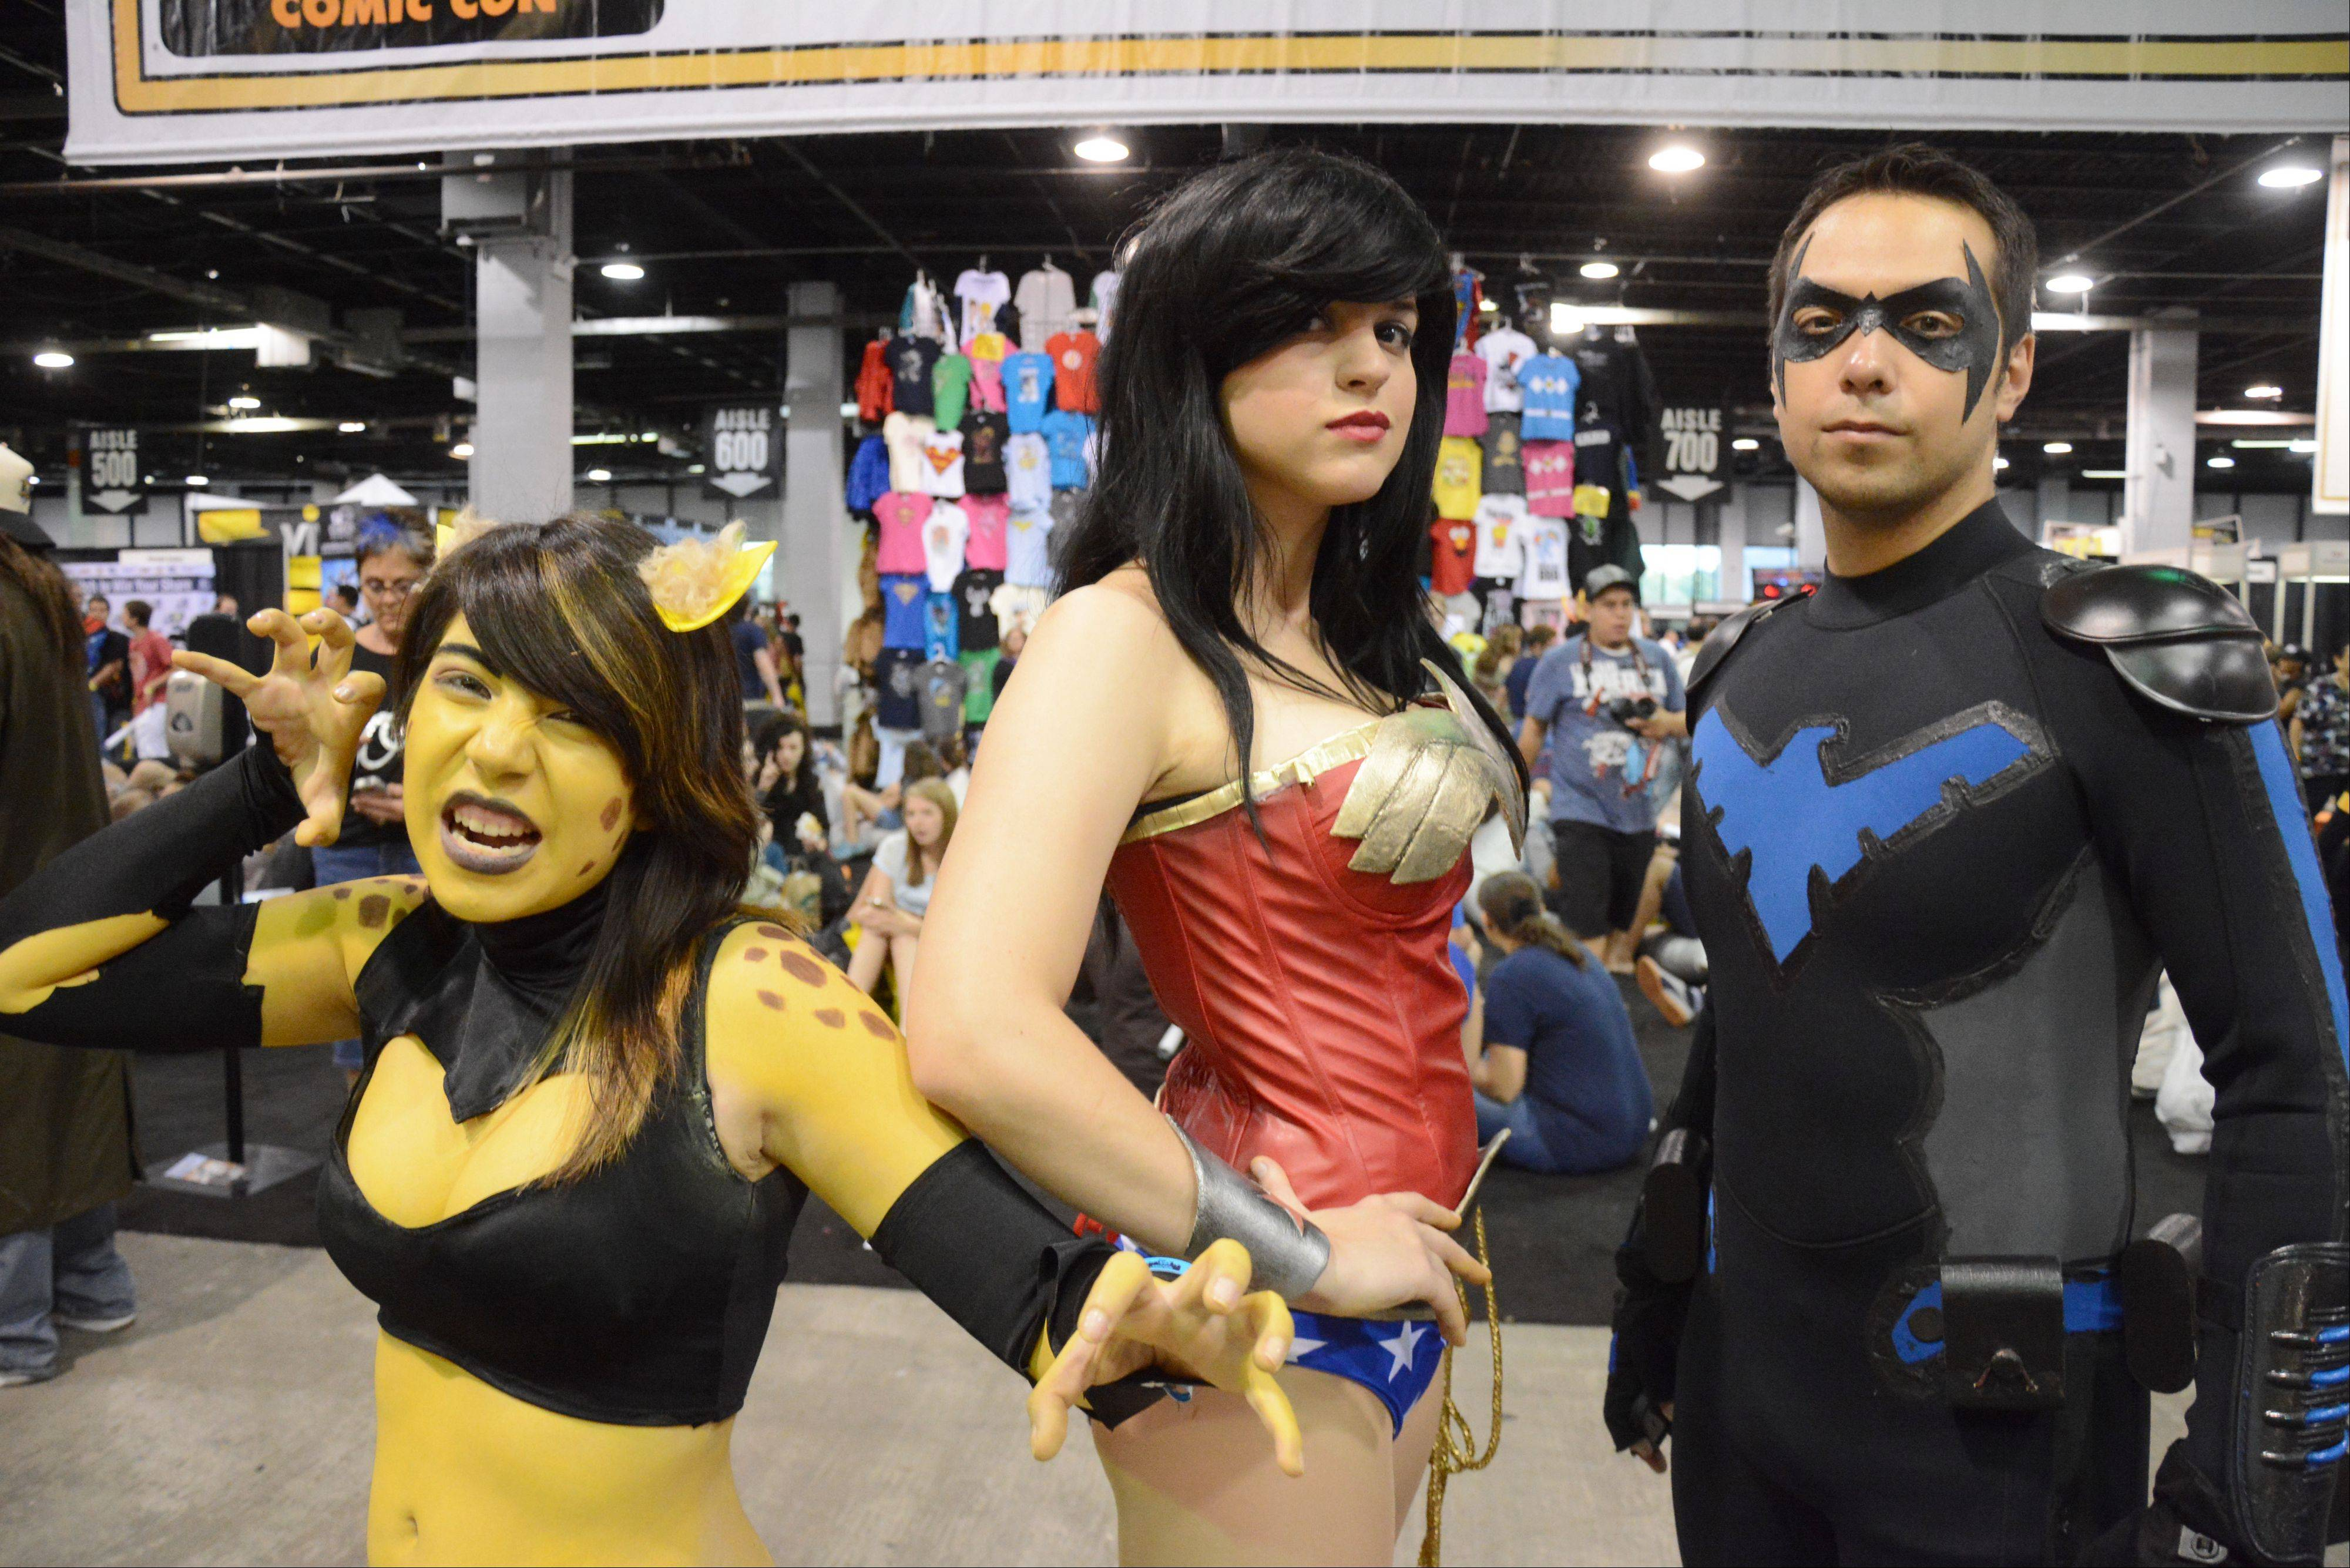 Images: Friday at Comic Con in Rosemont